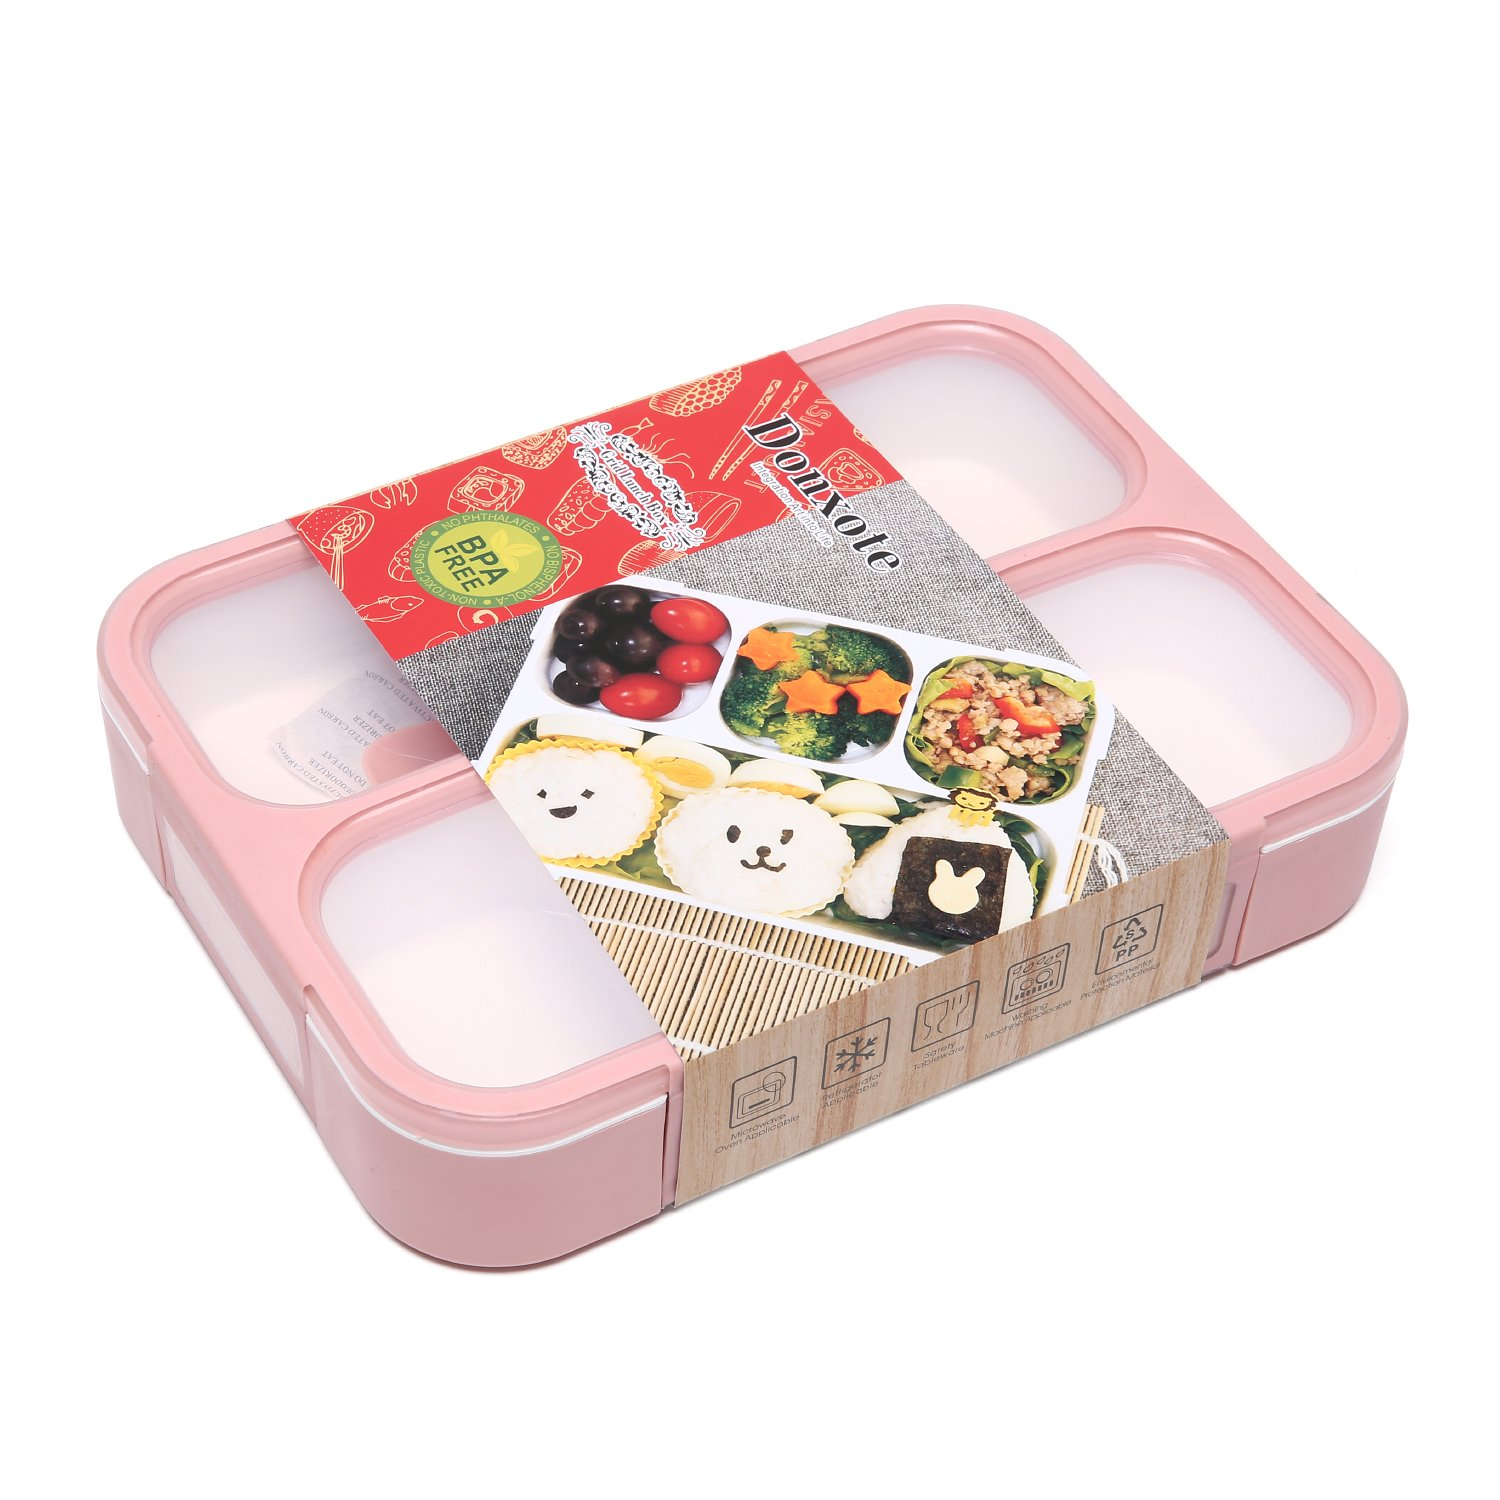 Donxote Lunch Bento Box Leak-Proof Sealing Food Container - 4 Compartments With a Spoon - BPA-free Microwave-Safe Boxes (Green) COMIN18JU048914